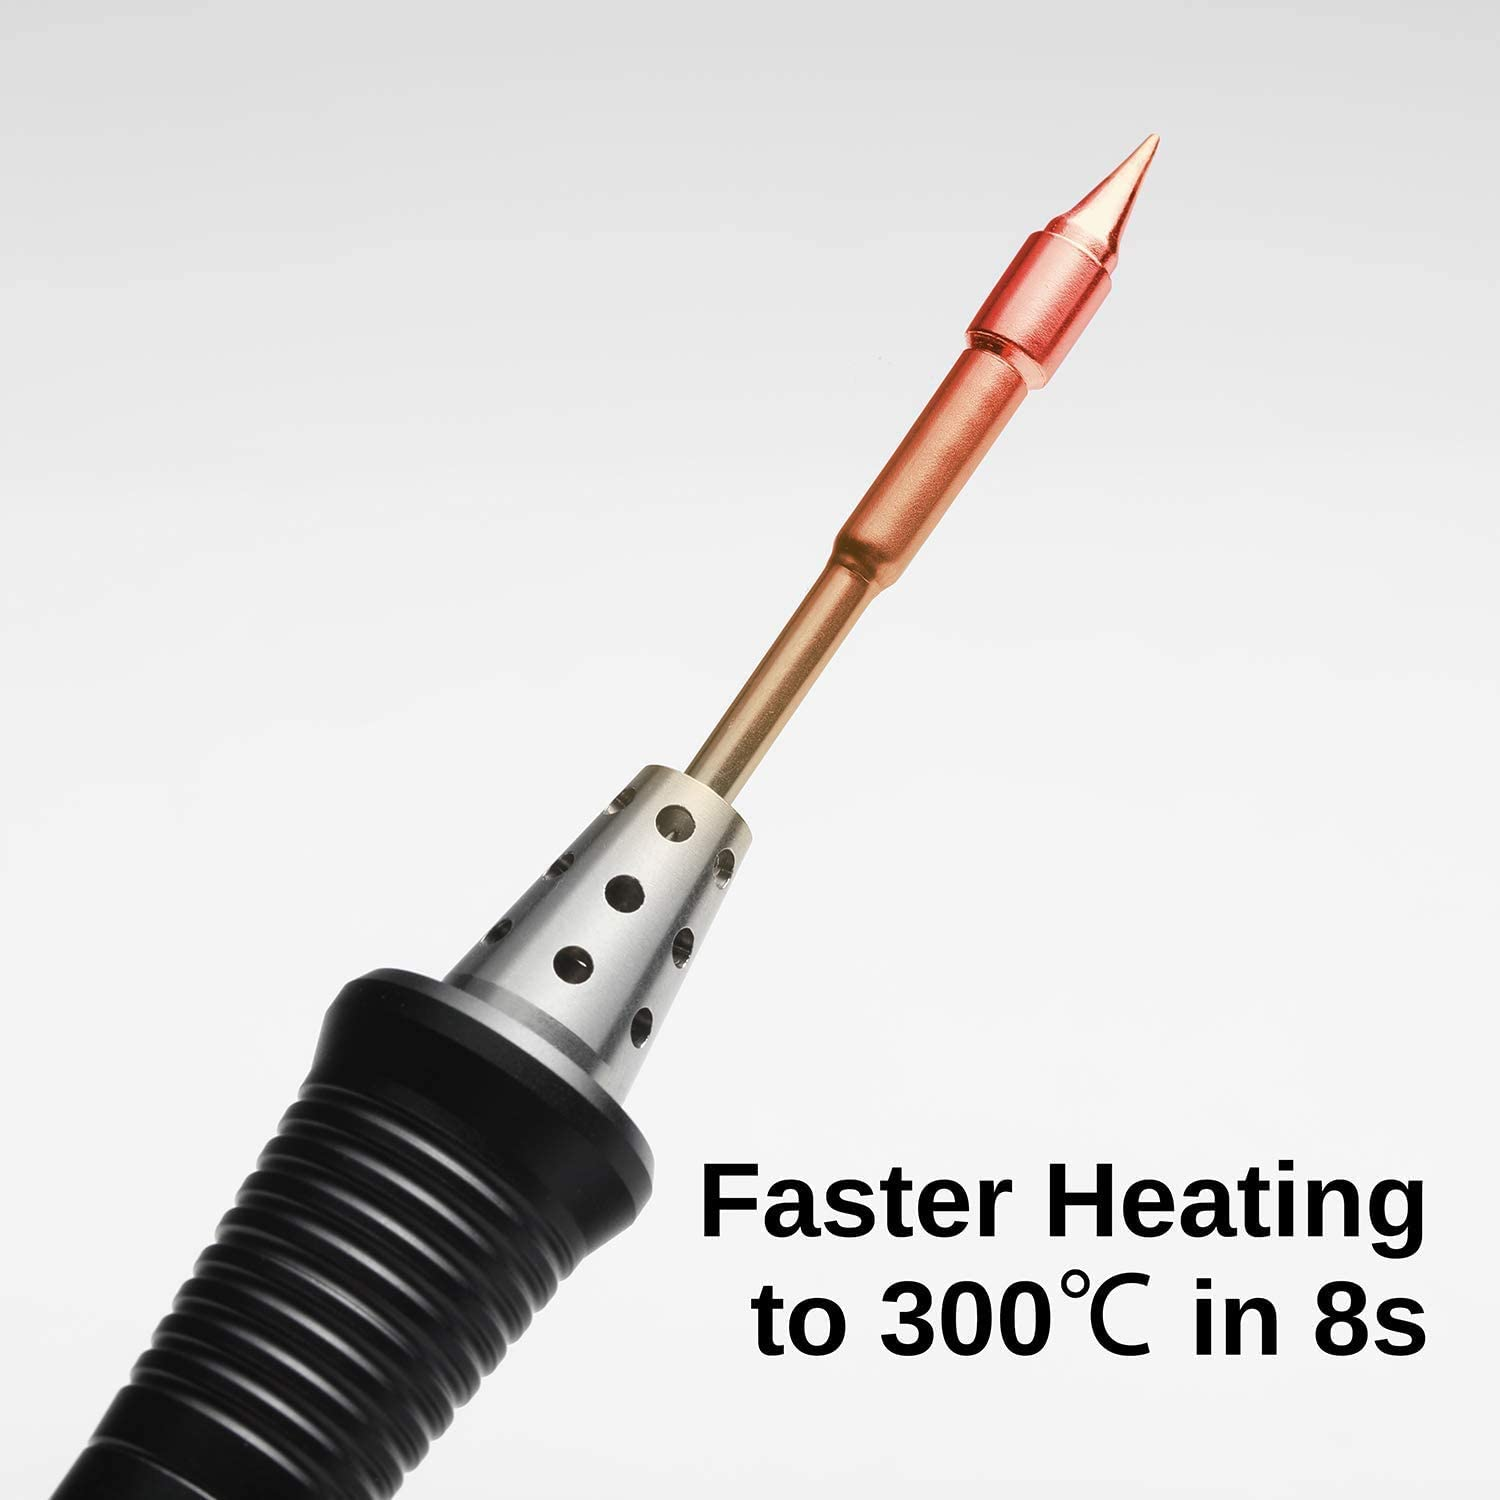 OLED Display Auto Sleep Mode SainSmart Upgraded TS80P Portable Soldering Iron with Adjustable Temperature Fast Internal Heating with TS-B02 Tip